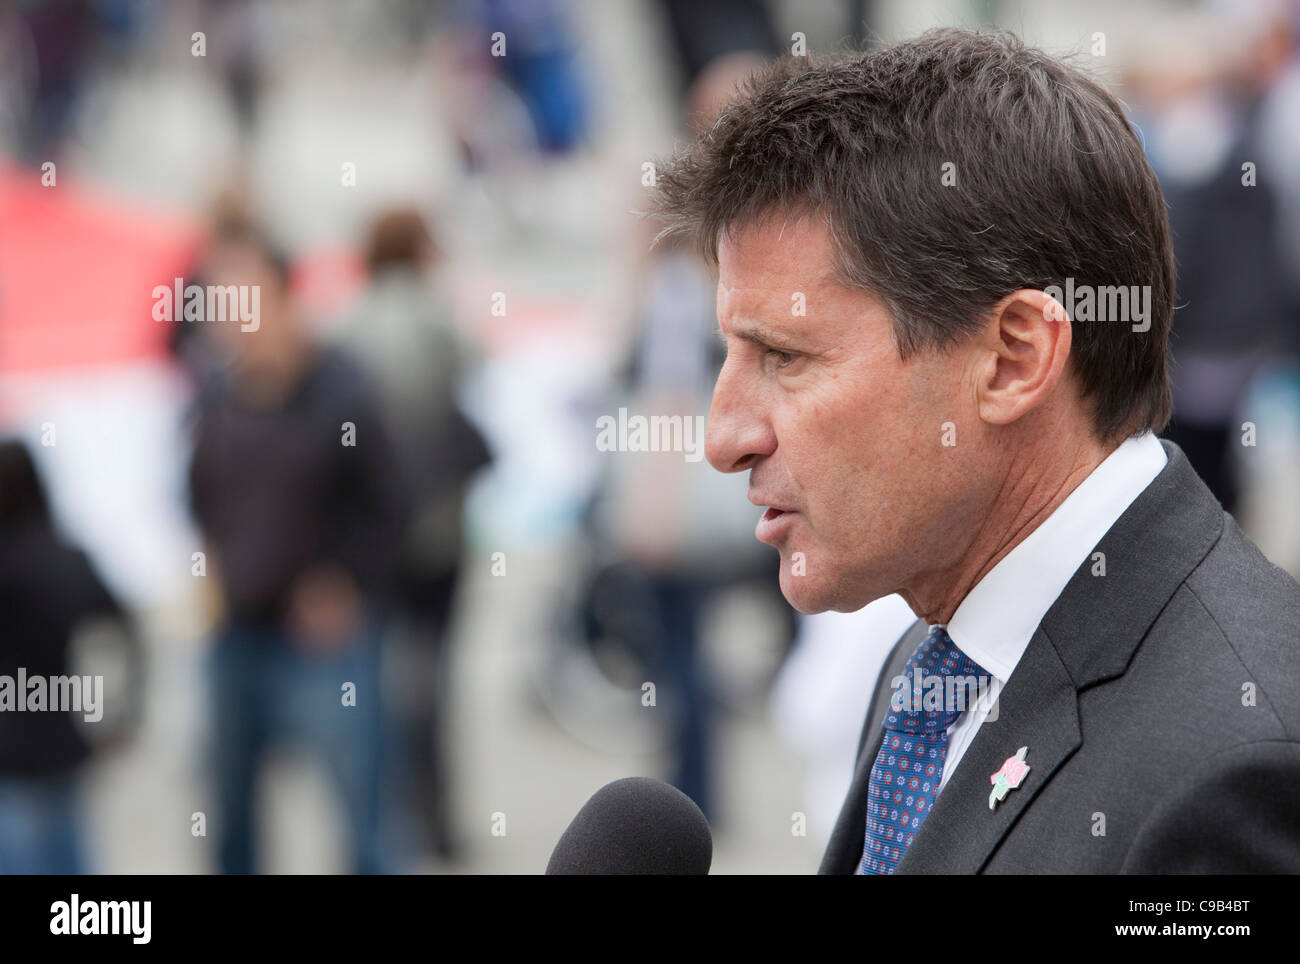 Lord Sebastian Coe giving interview on International Paralympic Day in Trafalgar Square, London - Stock Image